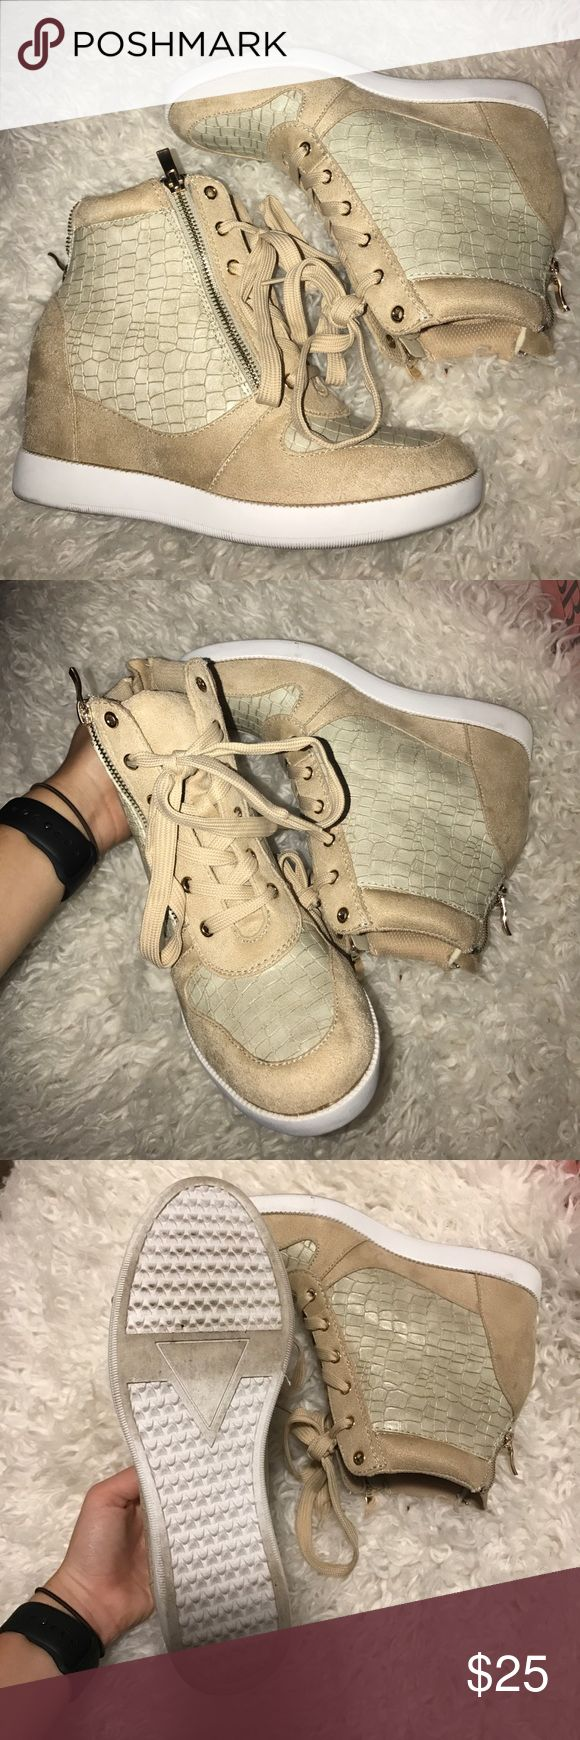 Hidden Wedge Sneakers! Light pink and champagne crocodile sneakers! Worn once for about 3 hours. Not really cute on me! I love them so it's a bummer but they're in fantastic condition! Size 7.5. I usually wear a size 7 but the site suggested I go up a half size! Shoe Dazzle Shoes Sneakers